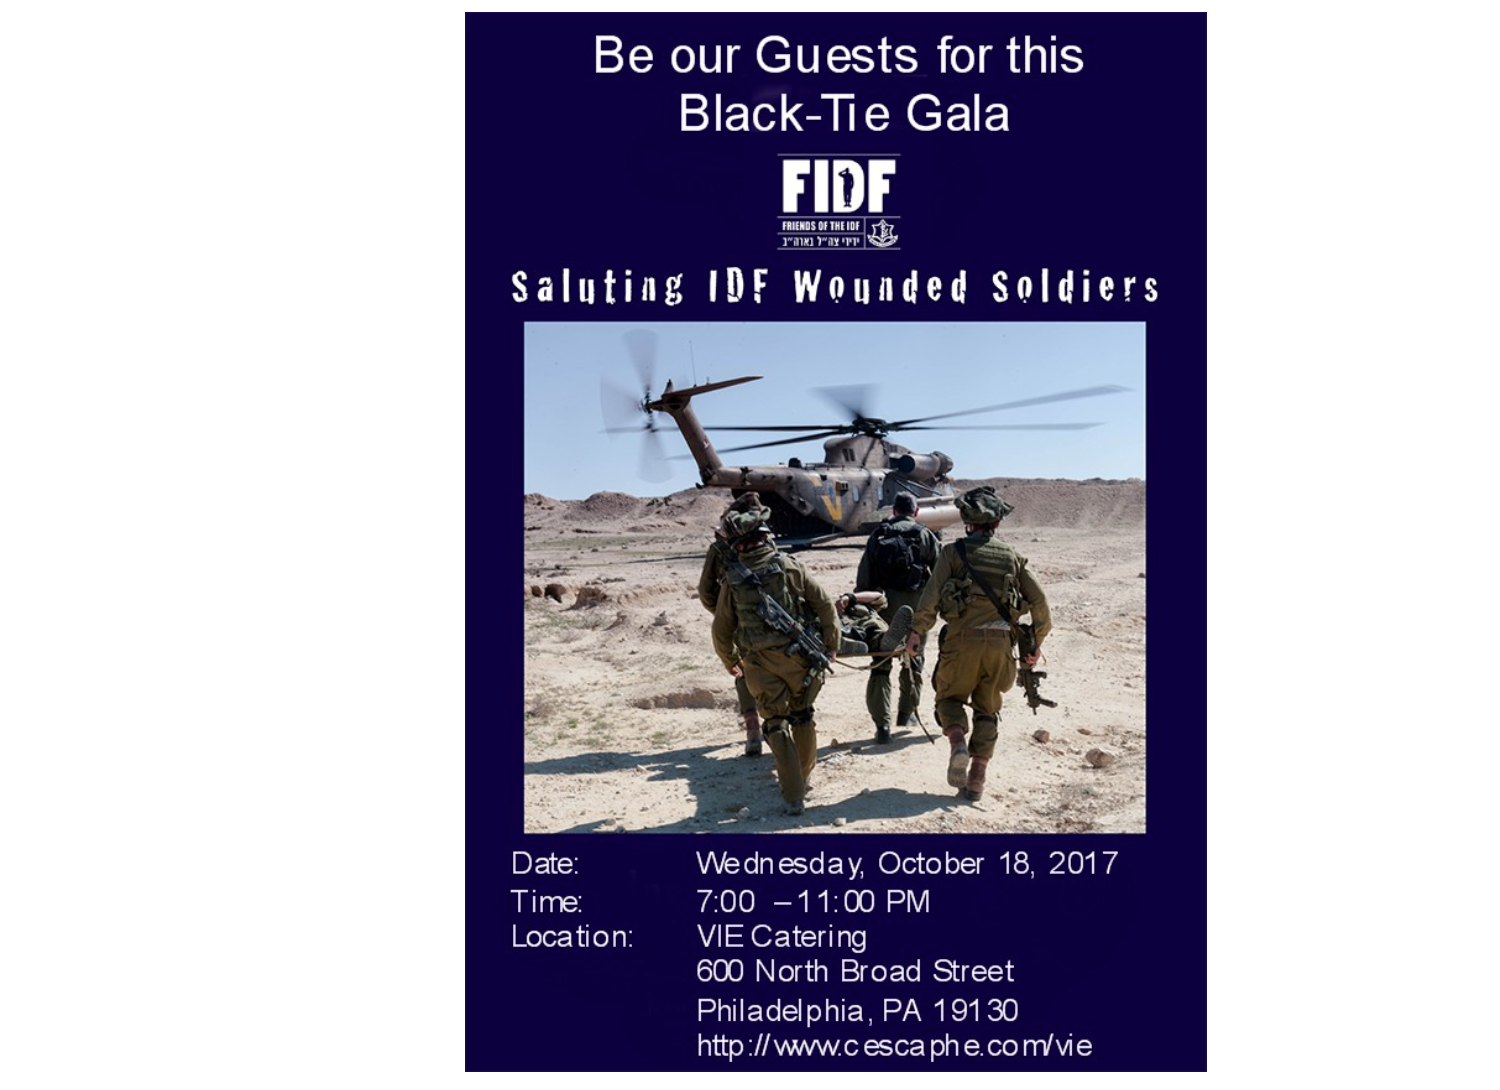 FIDF (Friends of the Israel Defense Forces) GALA - Saluting IDF Wounded Soldiers